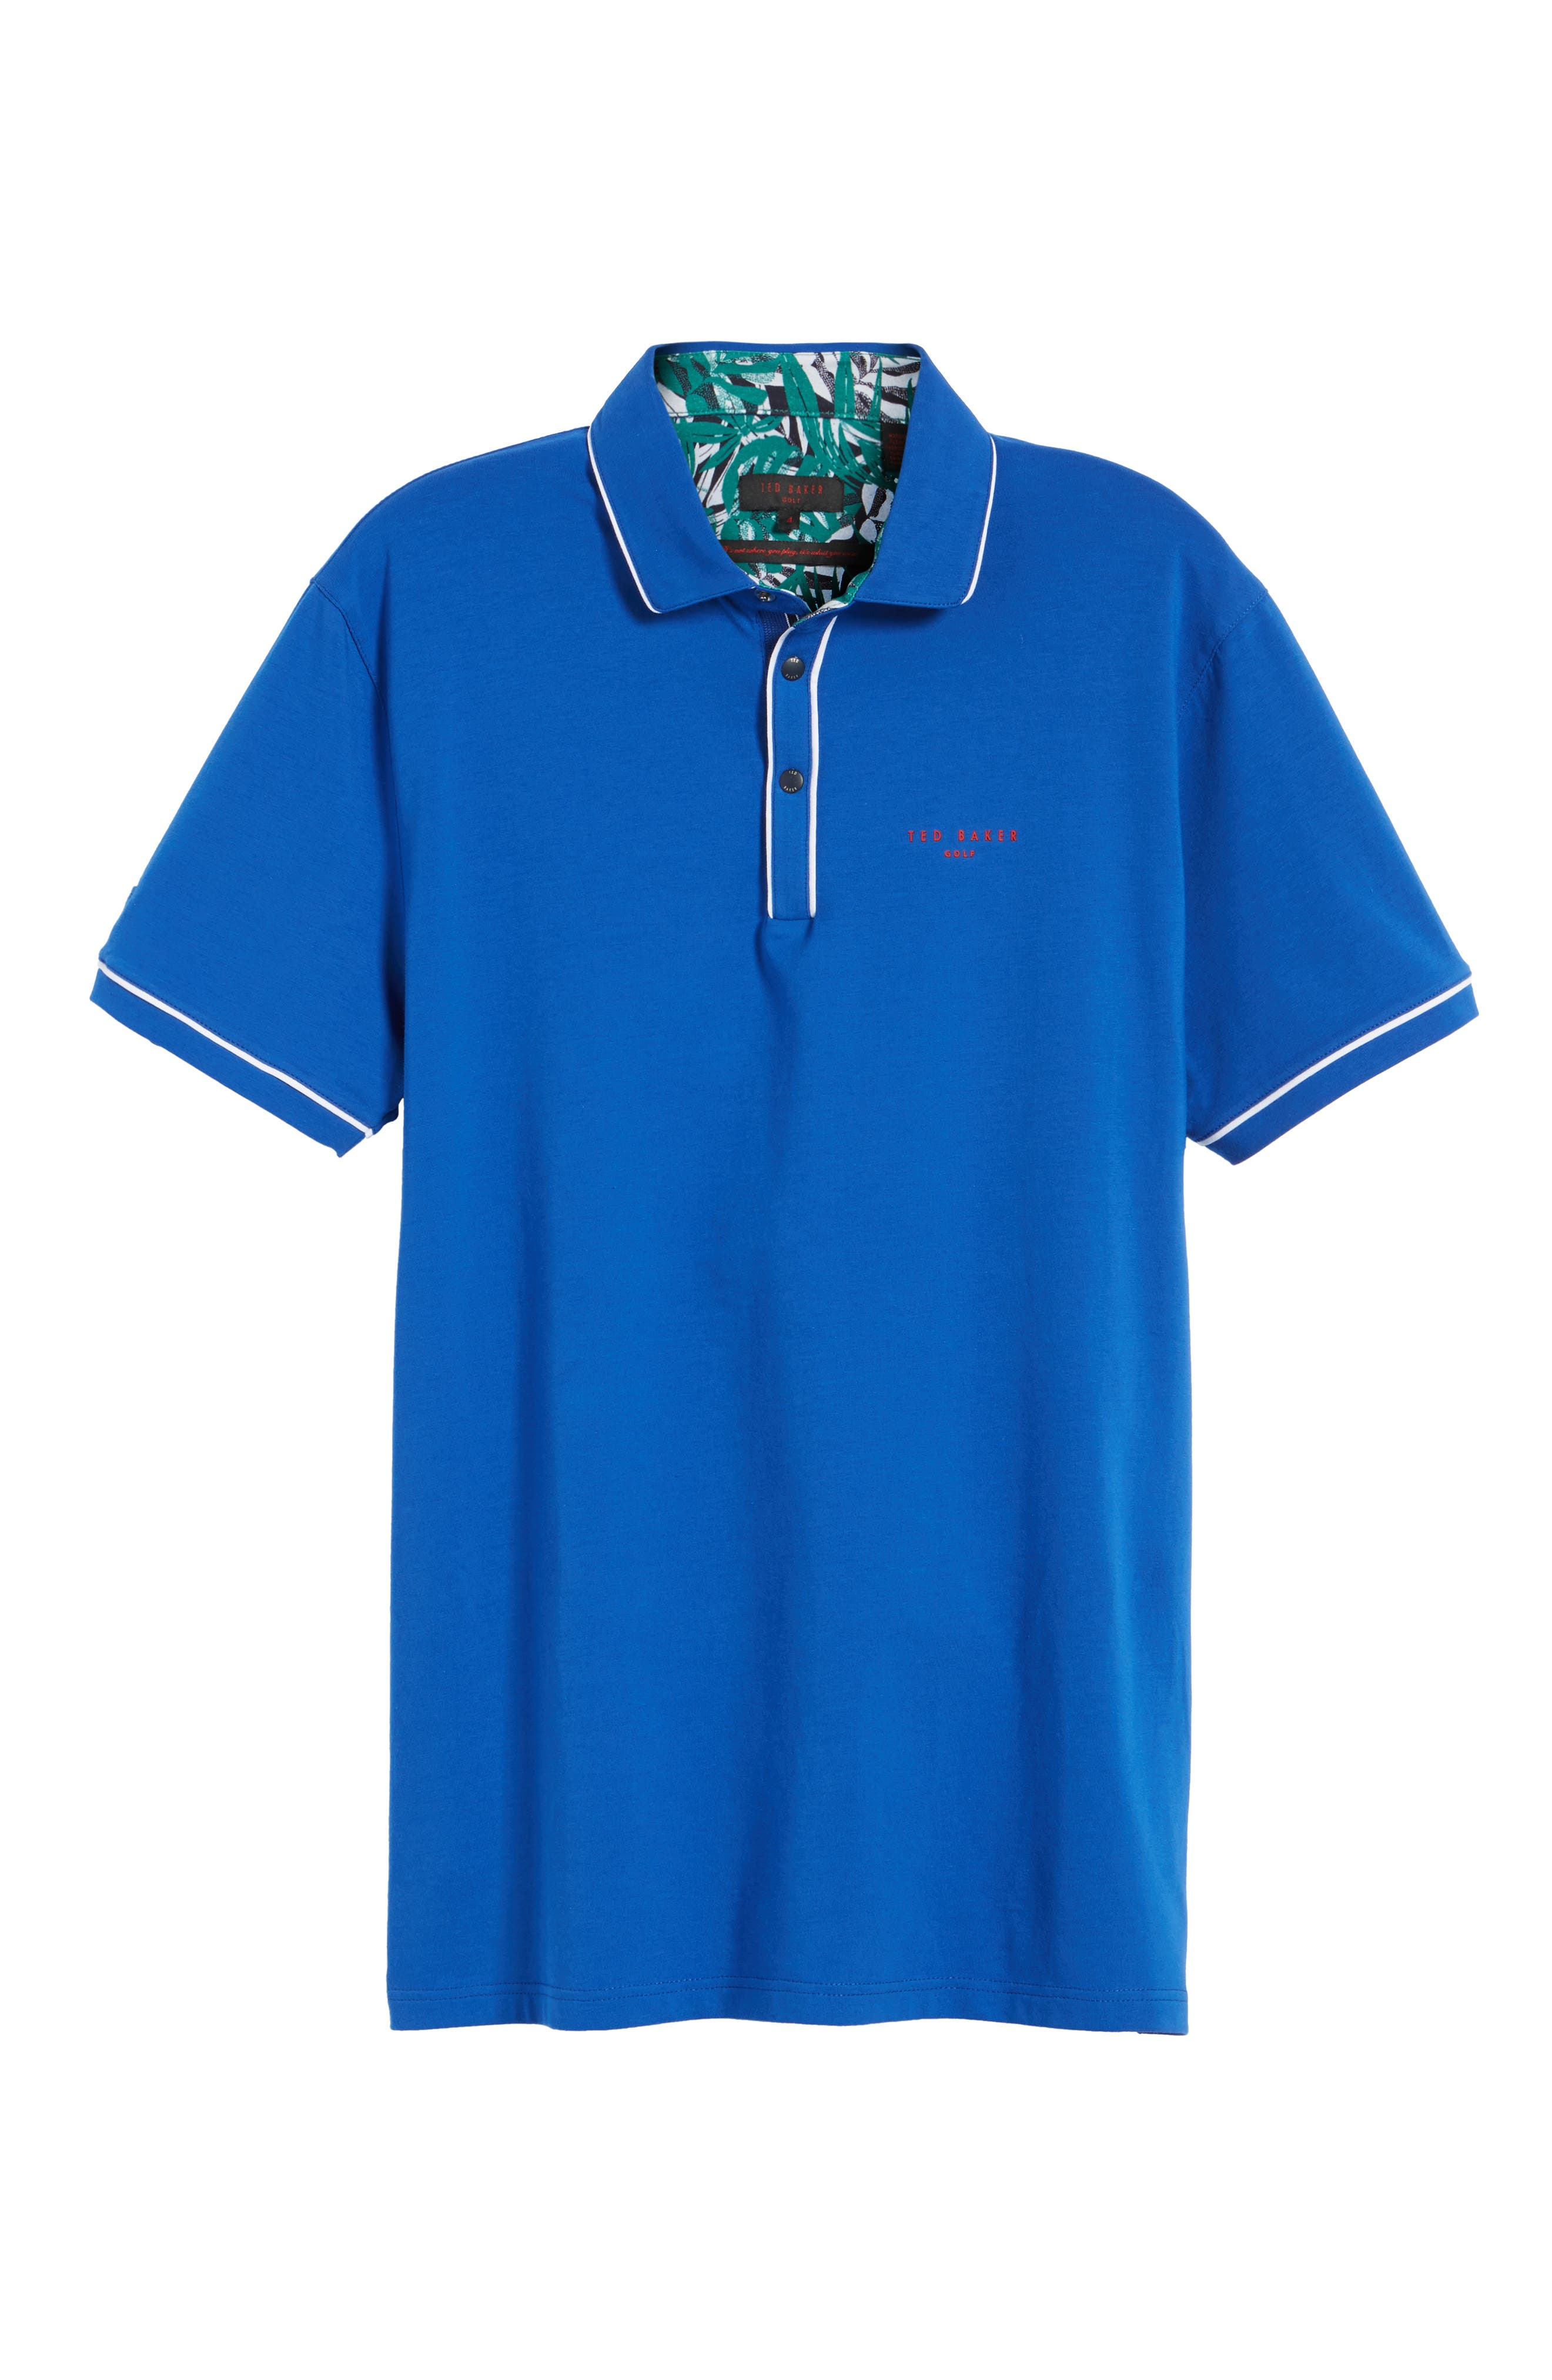 Alternate Image 5  - Ted Baker London Playgo Piped Trim Golf Polo